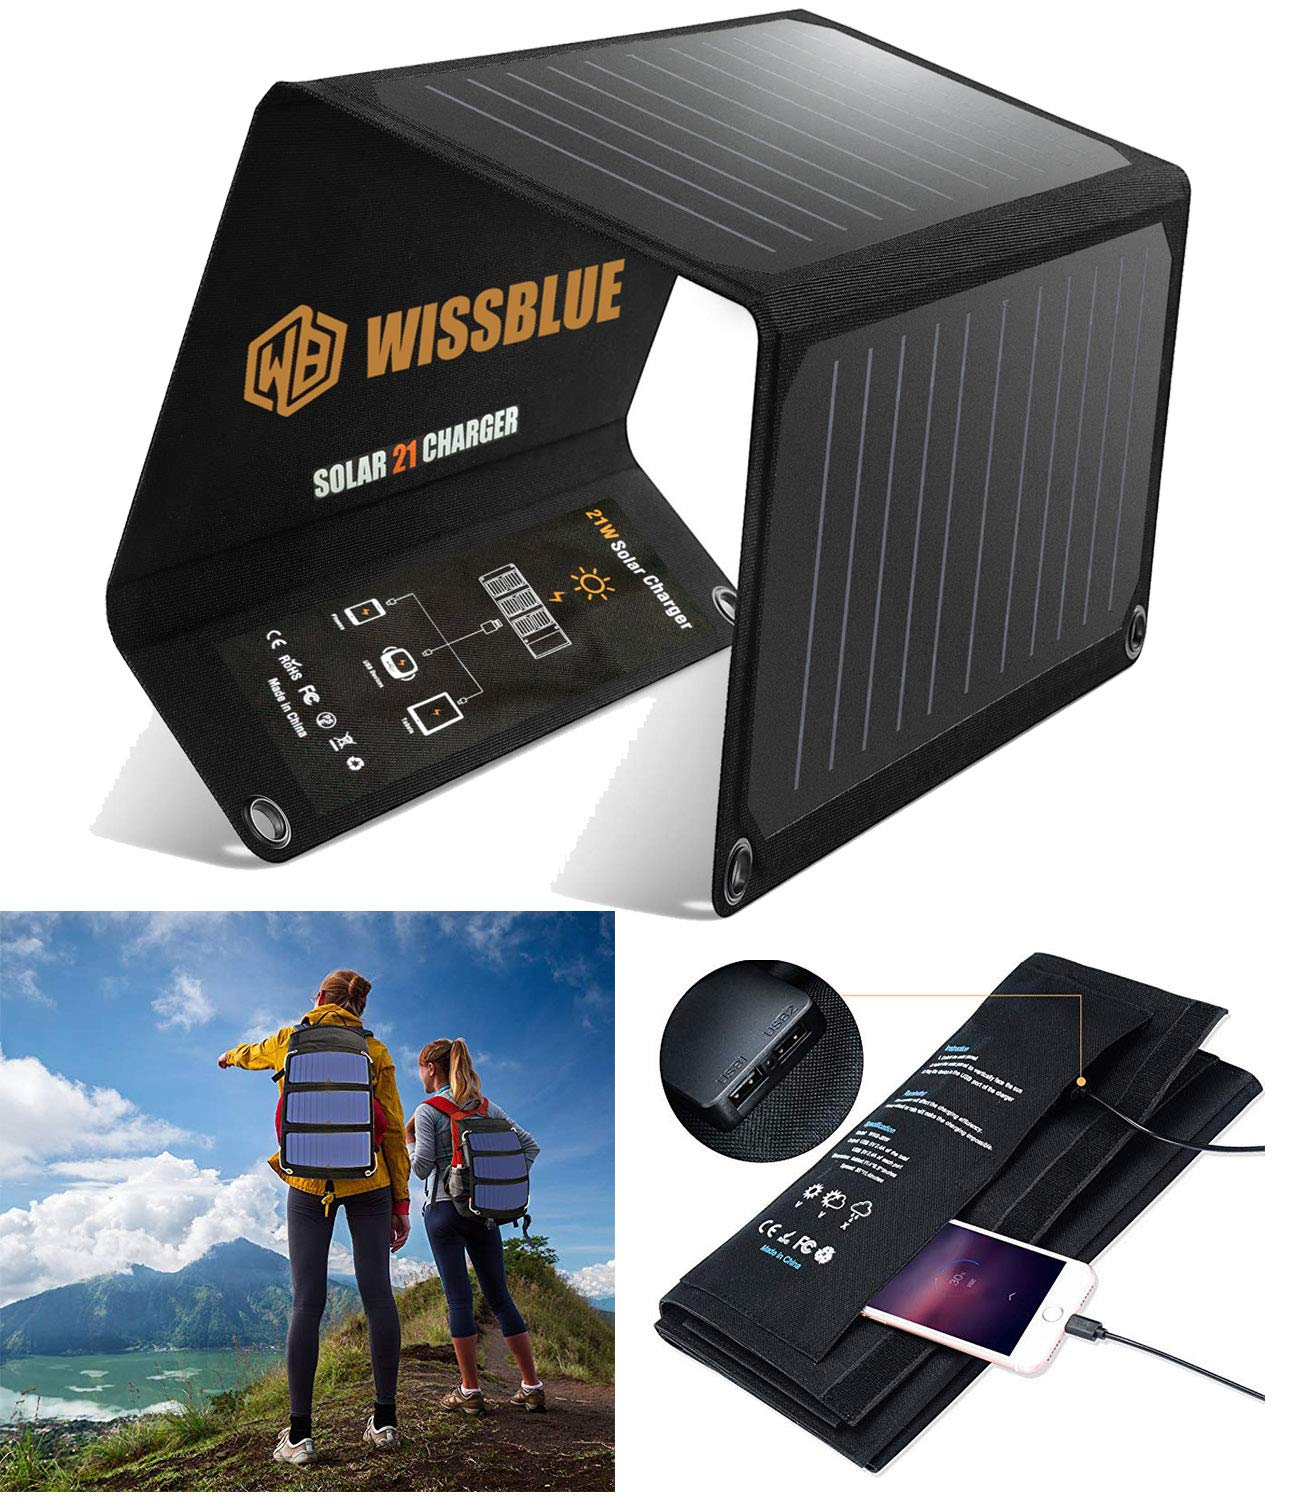 WISSBLUE Solar Charger, 21W Dual USB 4.2A Fast Solar Panel Charger, Portable Camping Travel Charger,Hiking,Hurricane, Emergency Backup. for All 5V Devices, iPhone iPad Samsung Kindle etc. by WISSBLUE